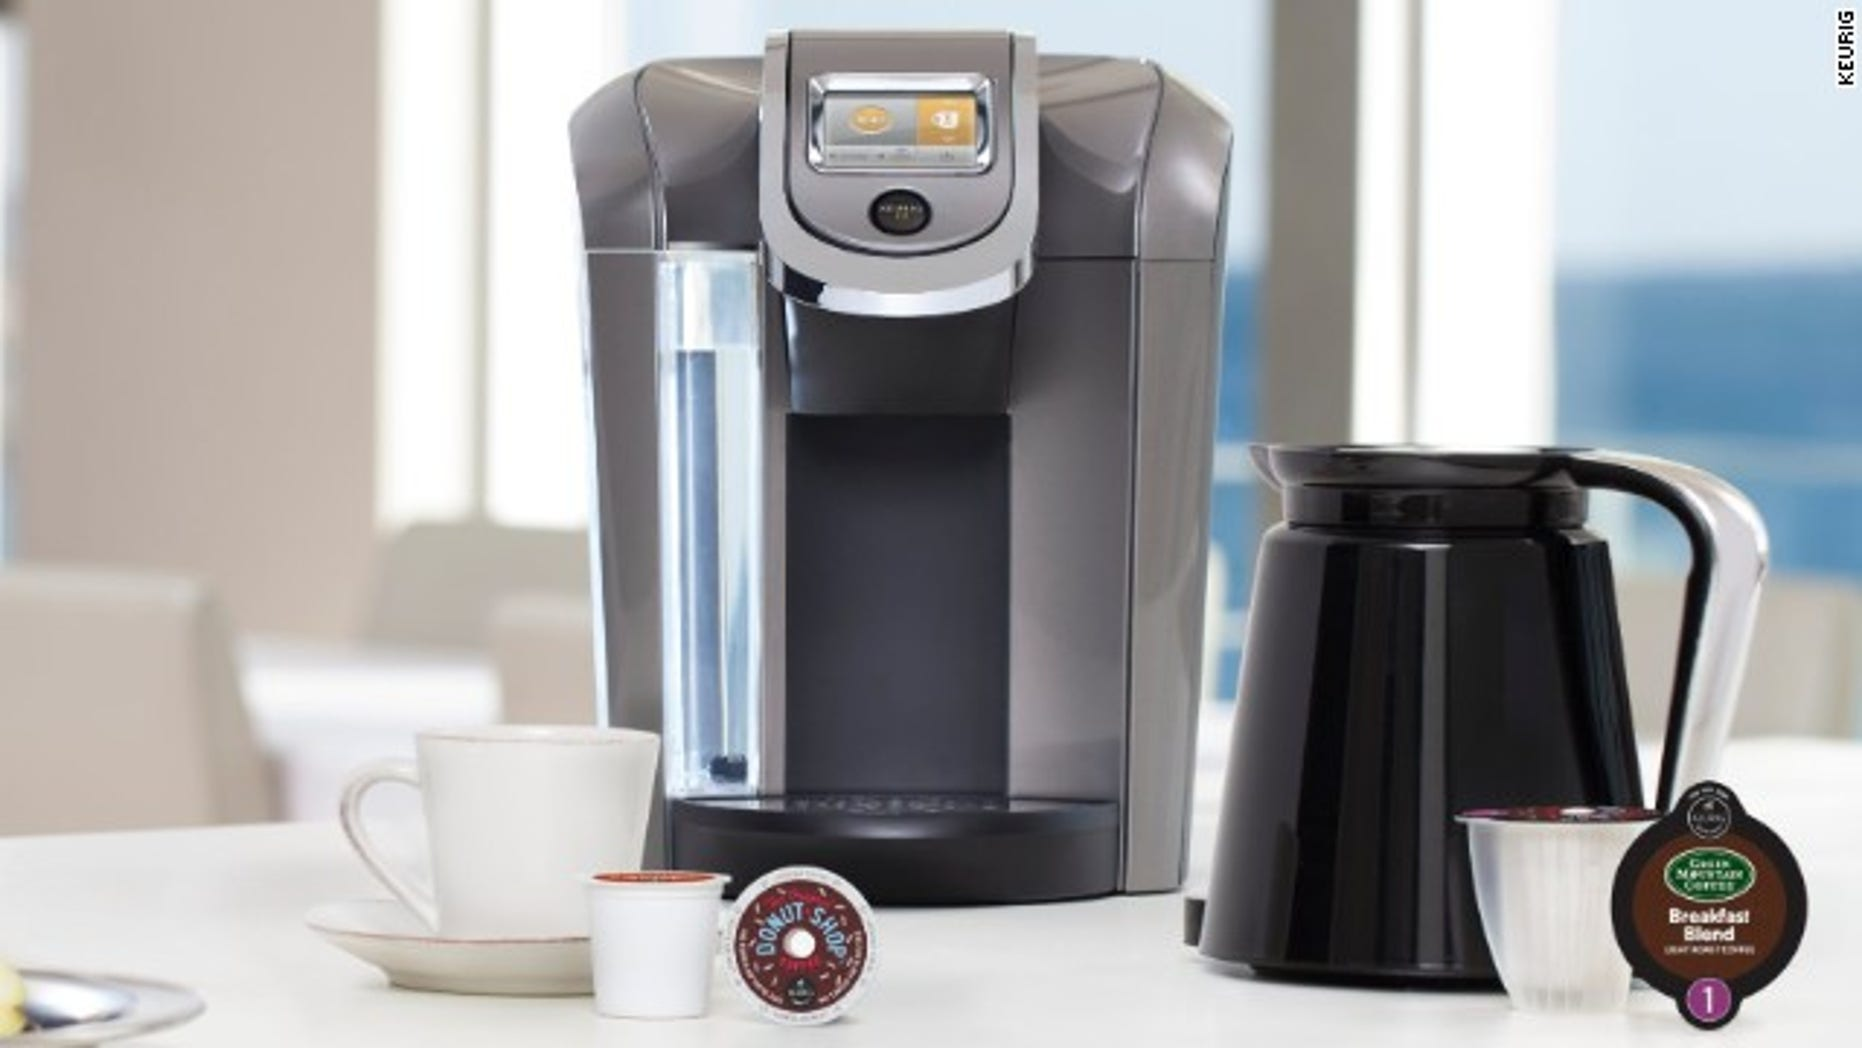 A new 2.0 machine with specially marked K-Cups.